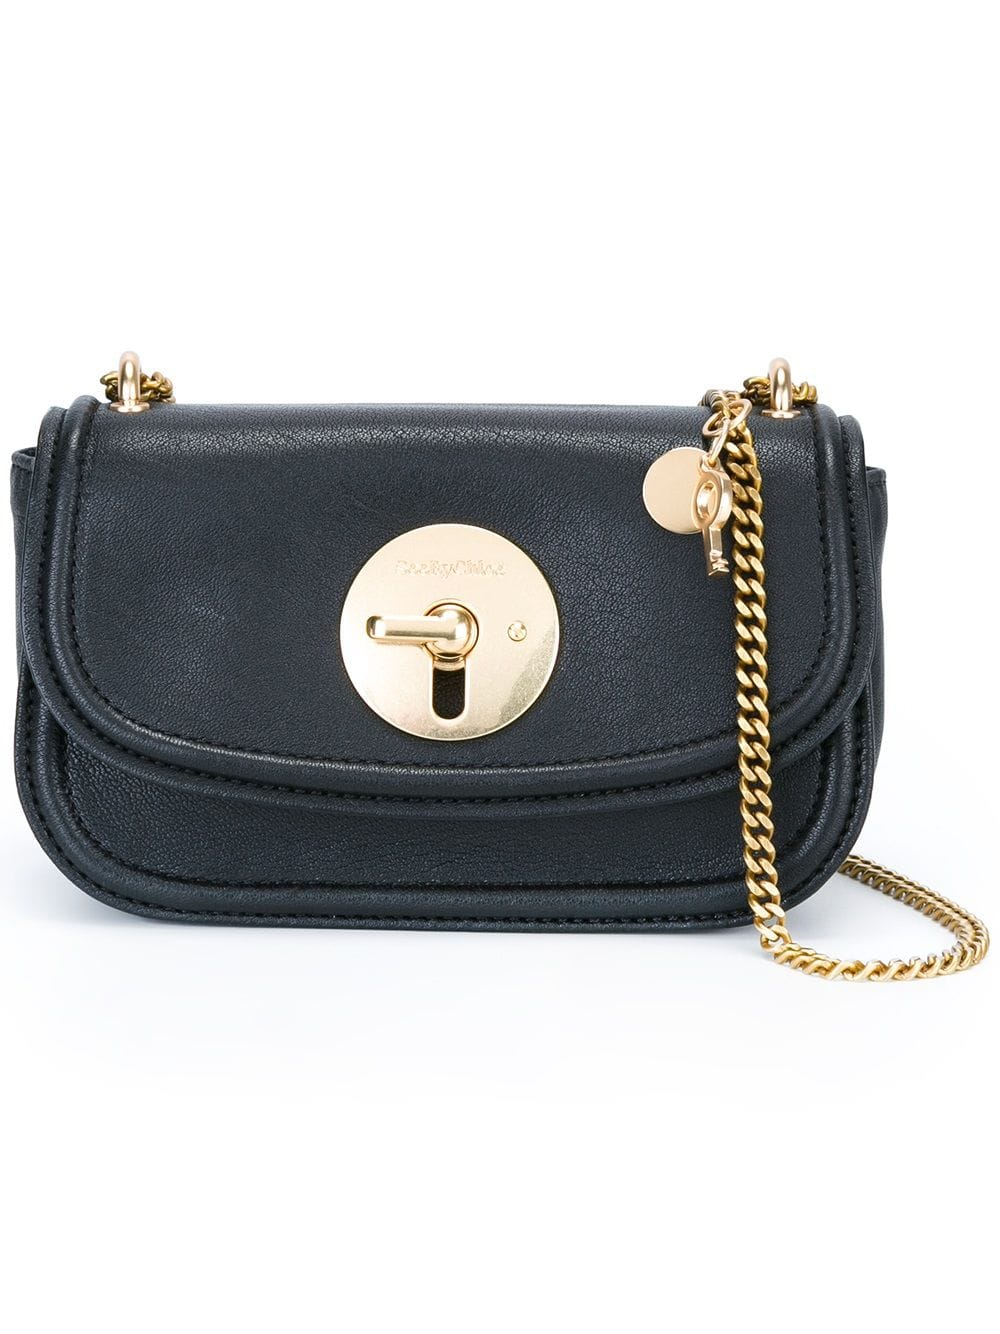 4570963180 See By Chloé Lois small shoulder bag - Black | Products in 2019 ...